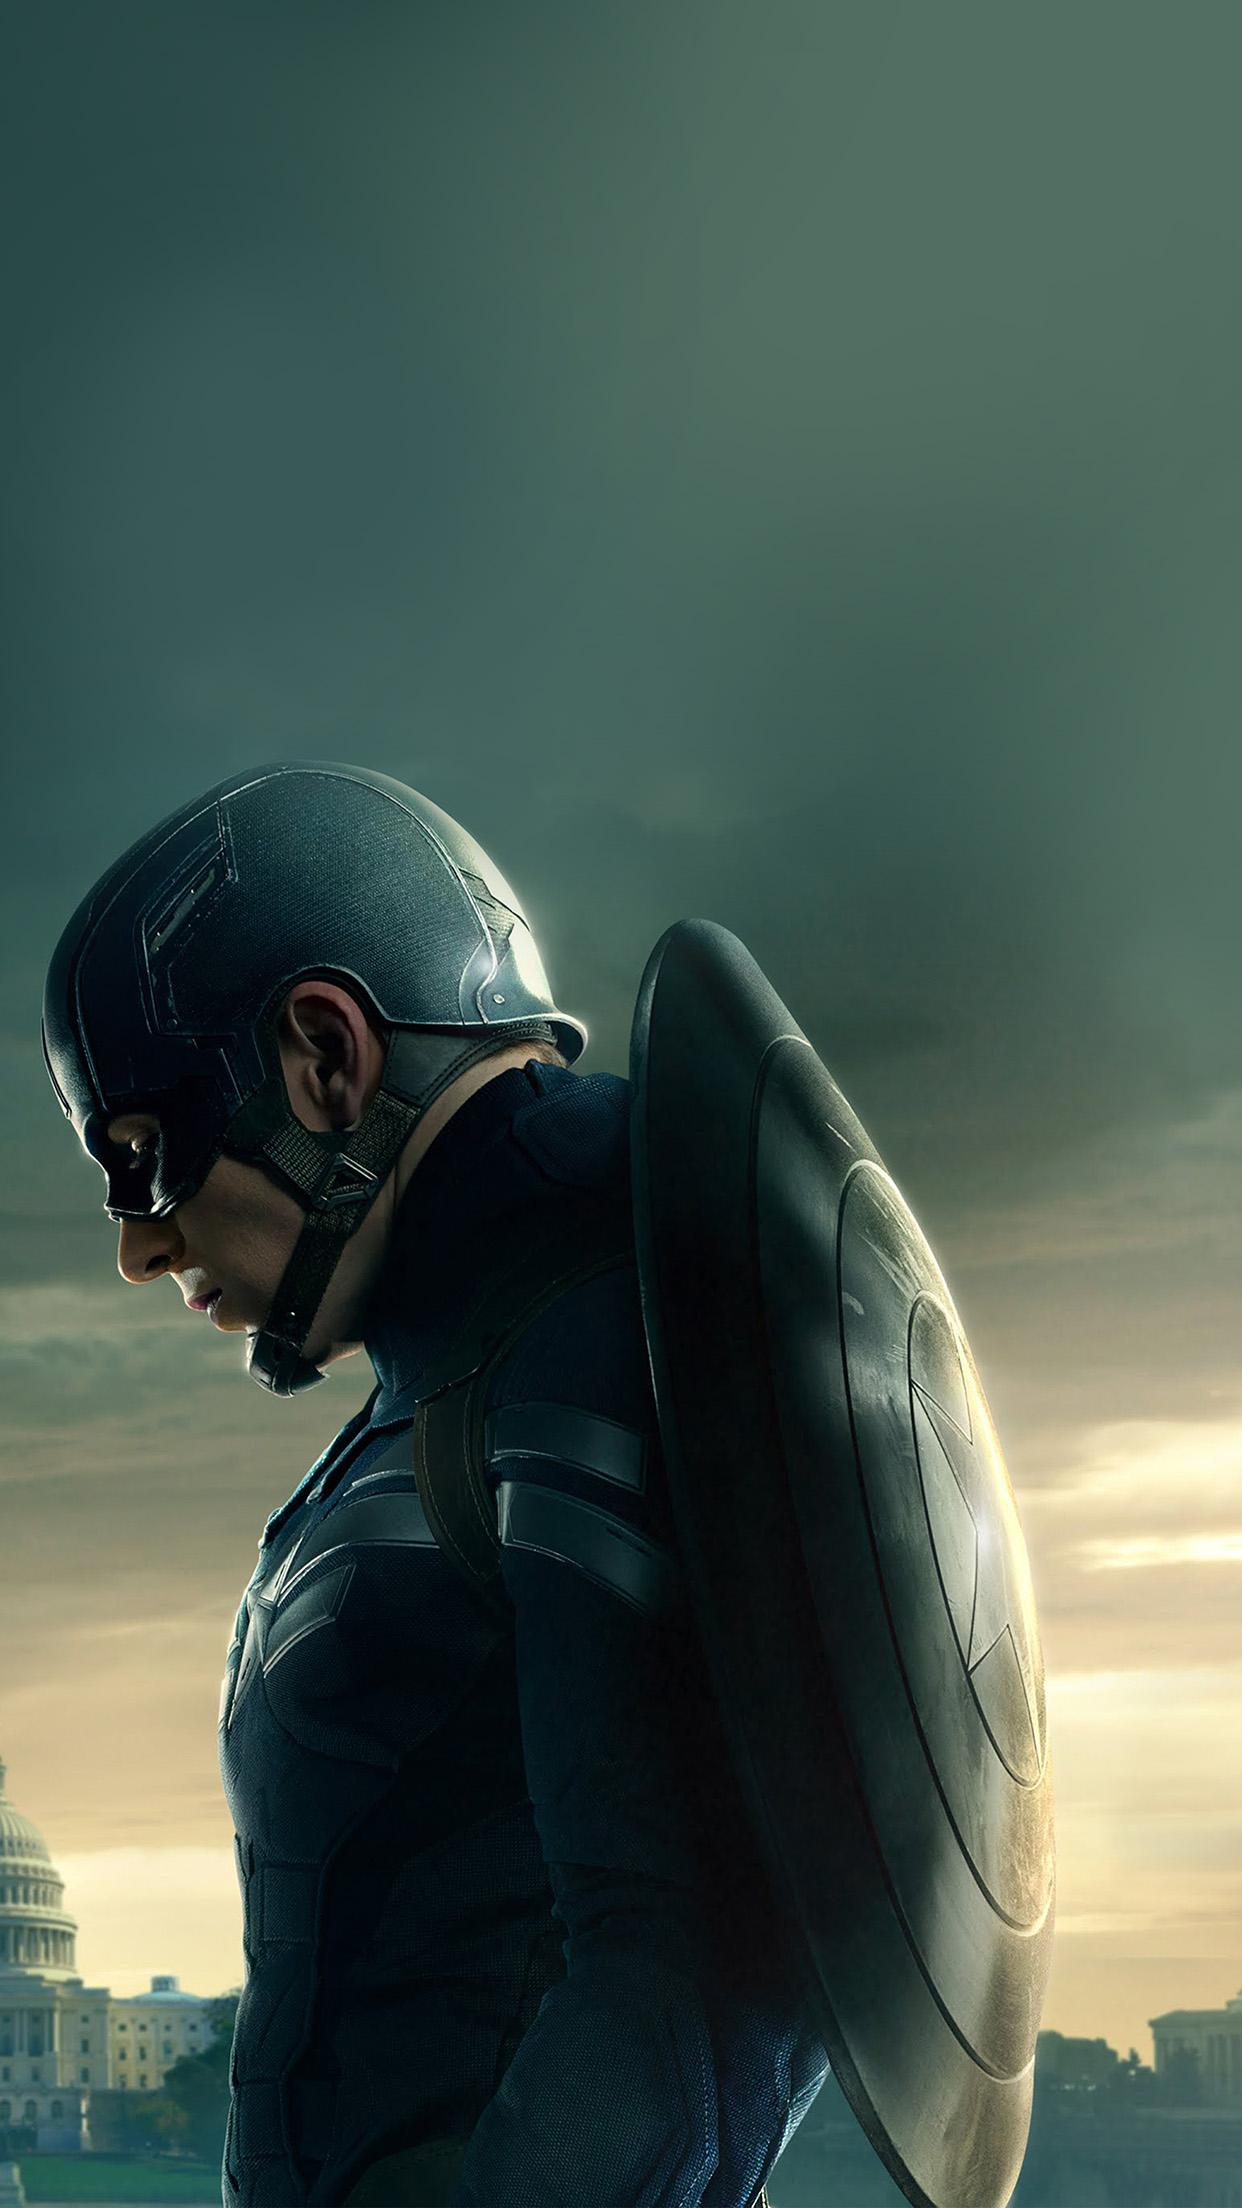 Free download Captain America Sad Hero Film Marvel Android